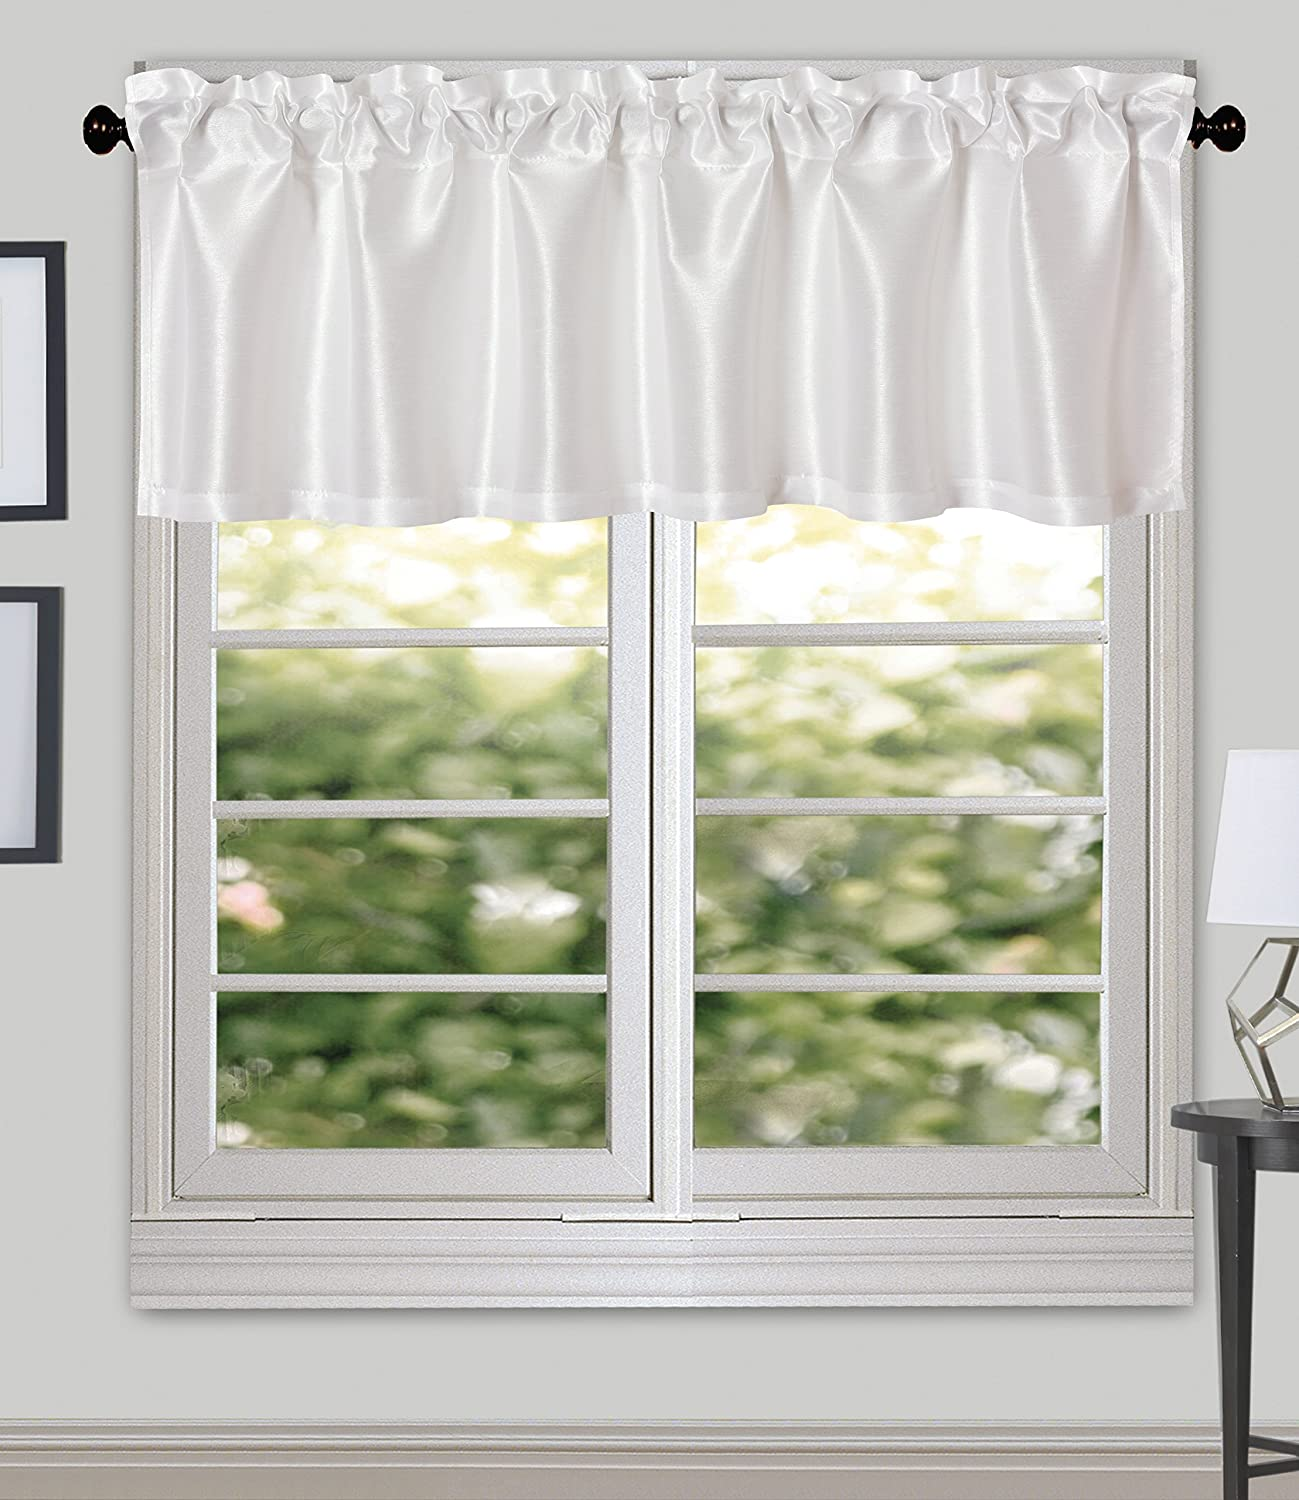 Pack of 2 Aqua Aiking Home 56 by 16 Inches Solid Faux Silk Window Valance